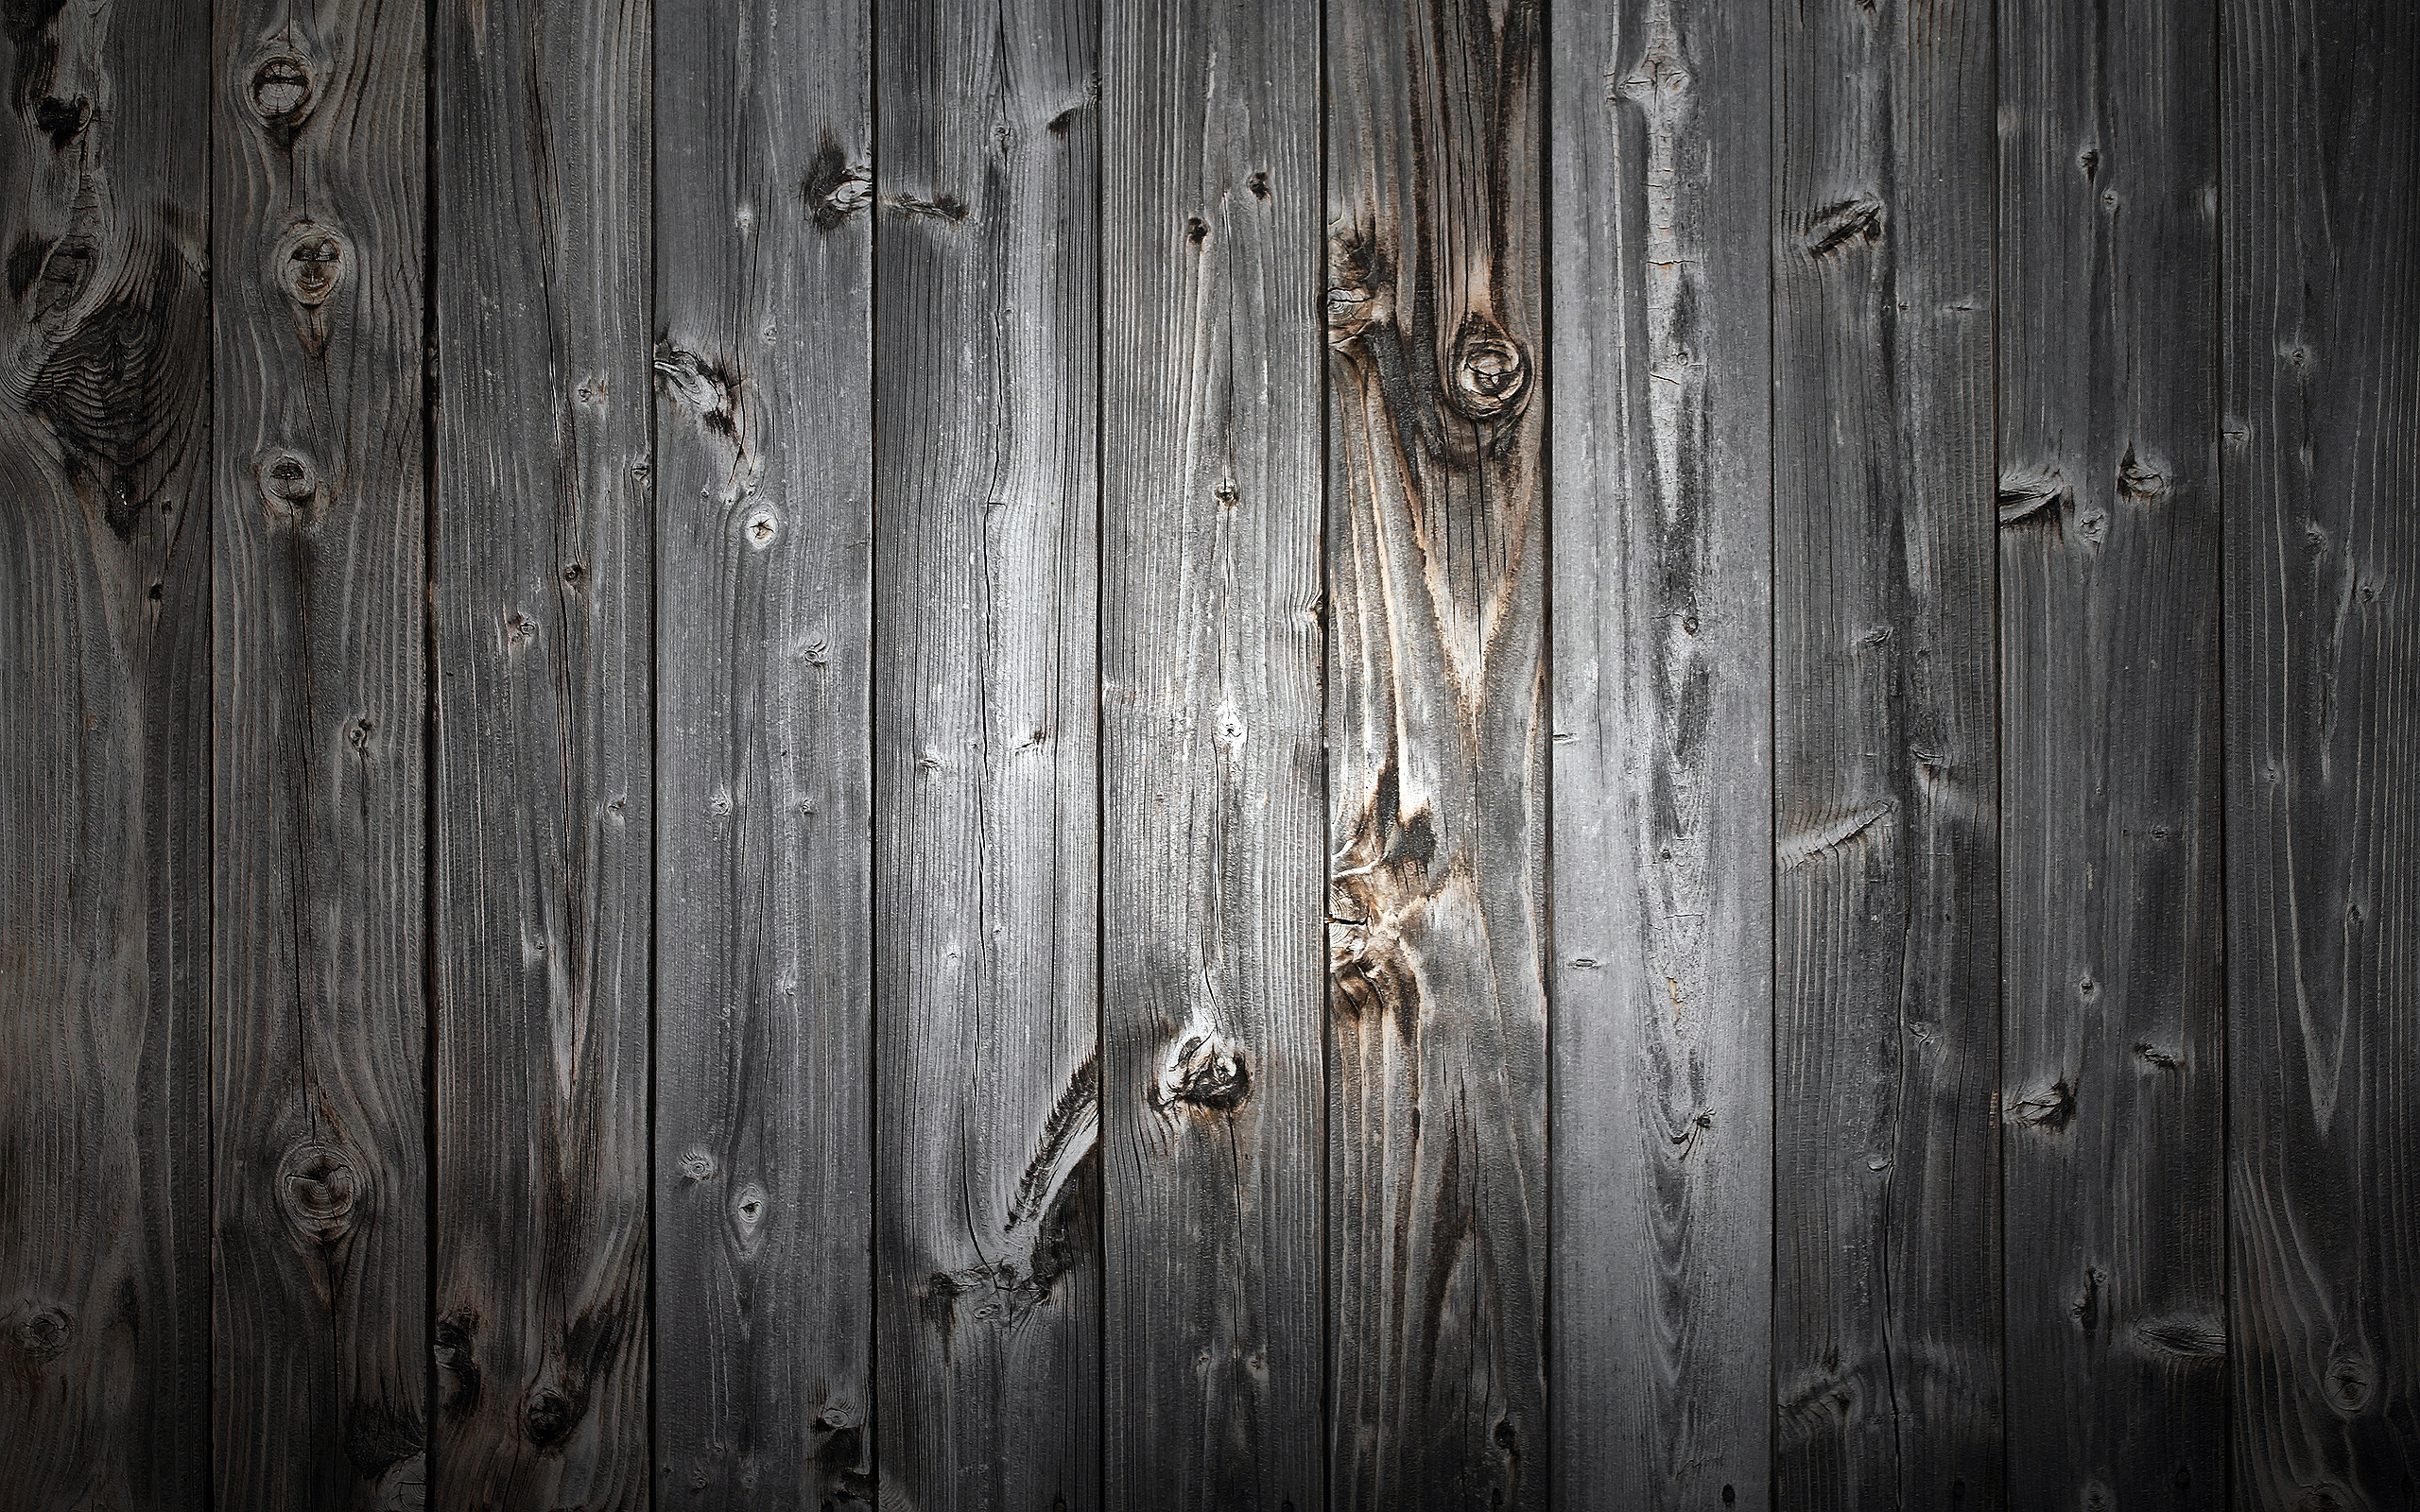 Free Wood Fence Wallpaper 31762 2560x1600 px